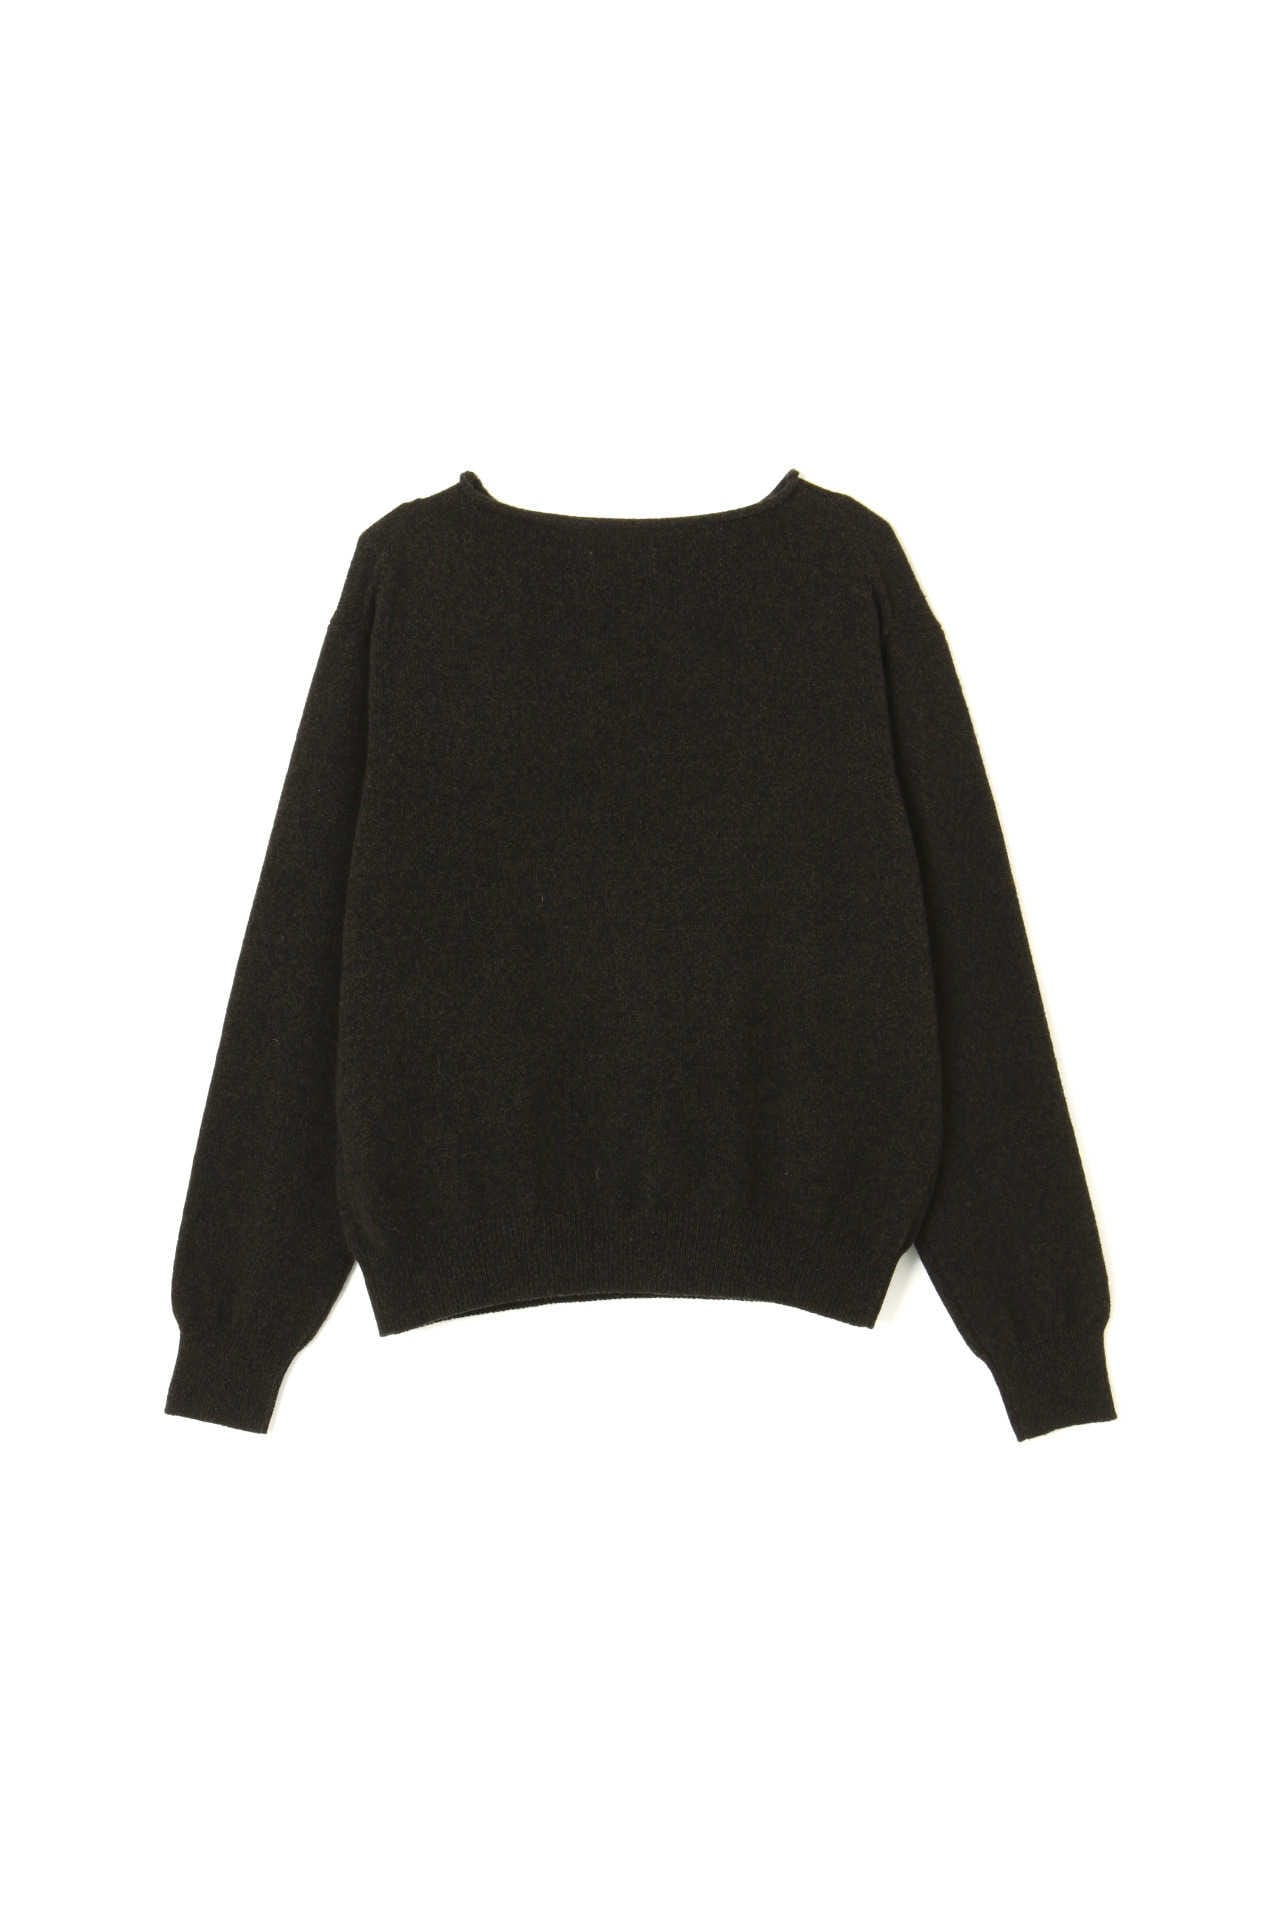 TWISTED WOOL CASHMERE JUMPER11